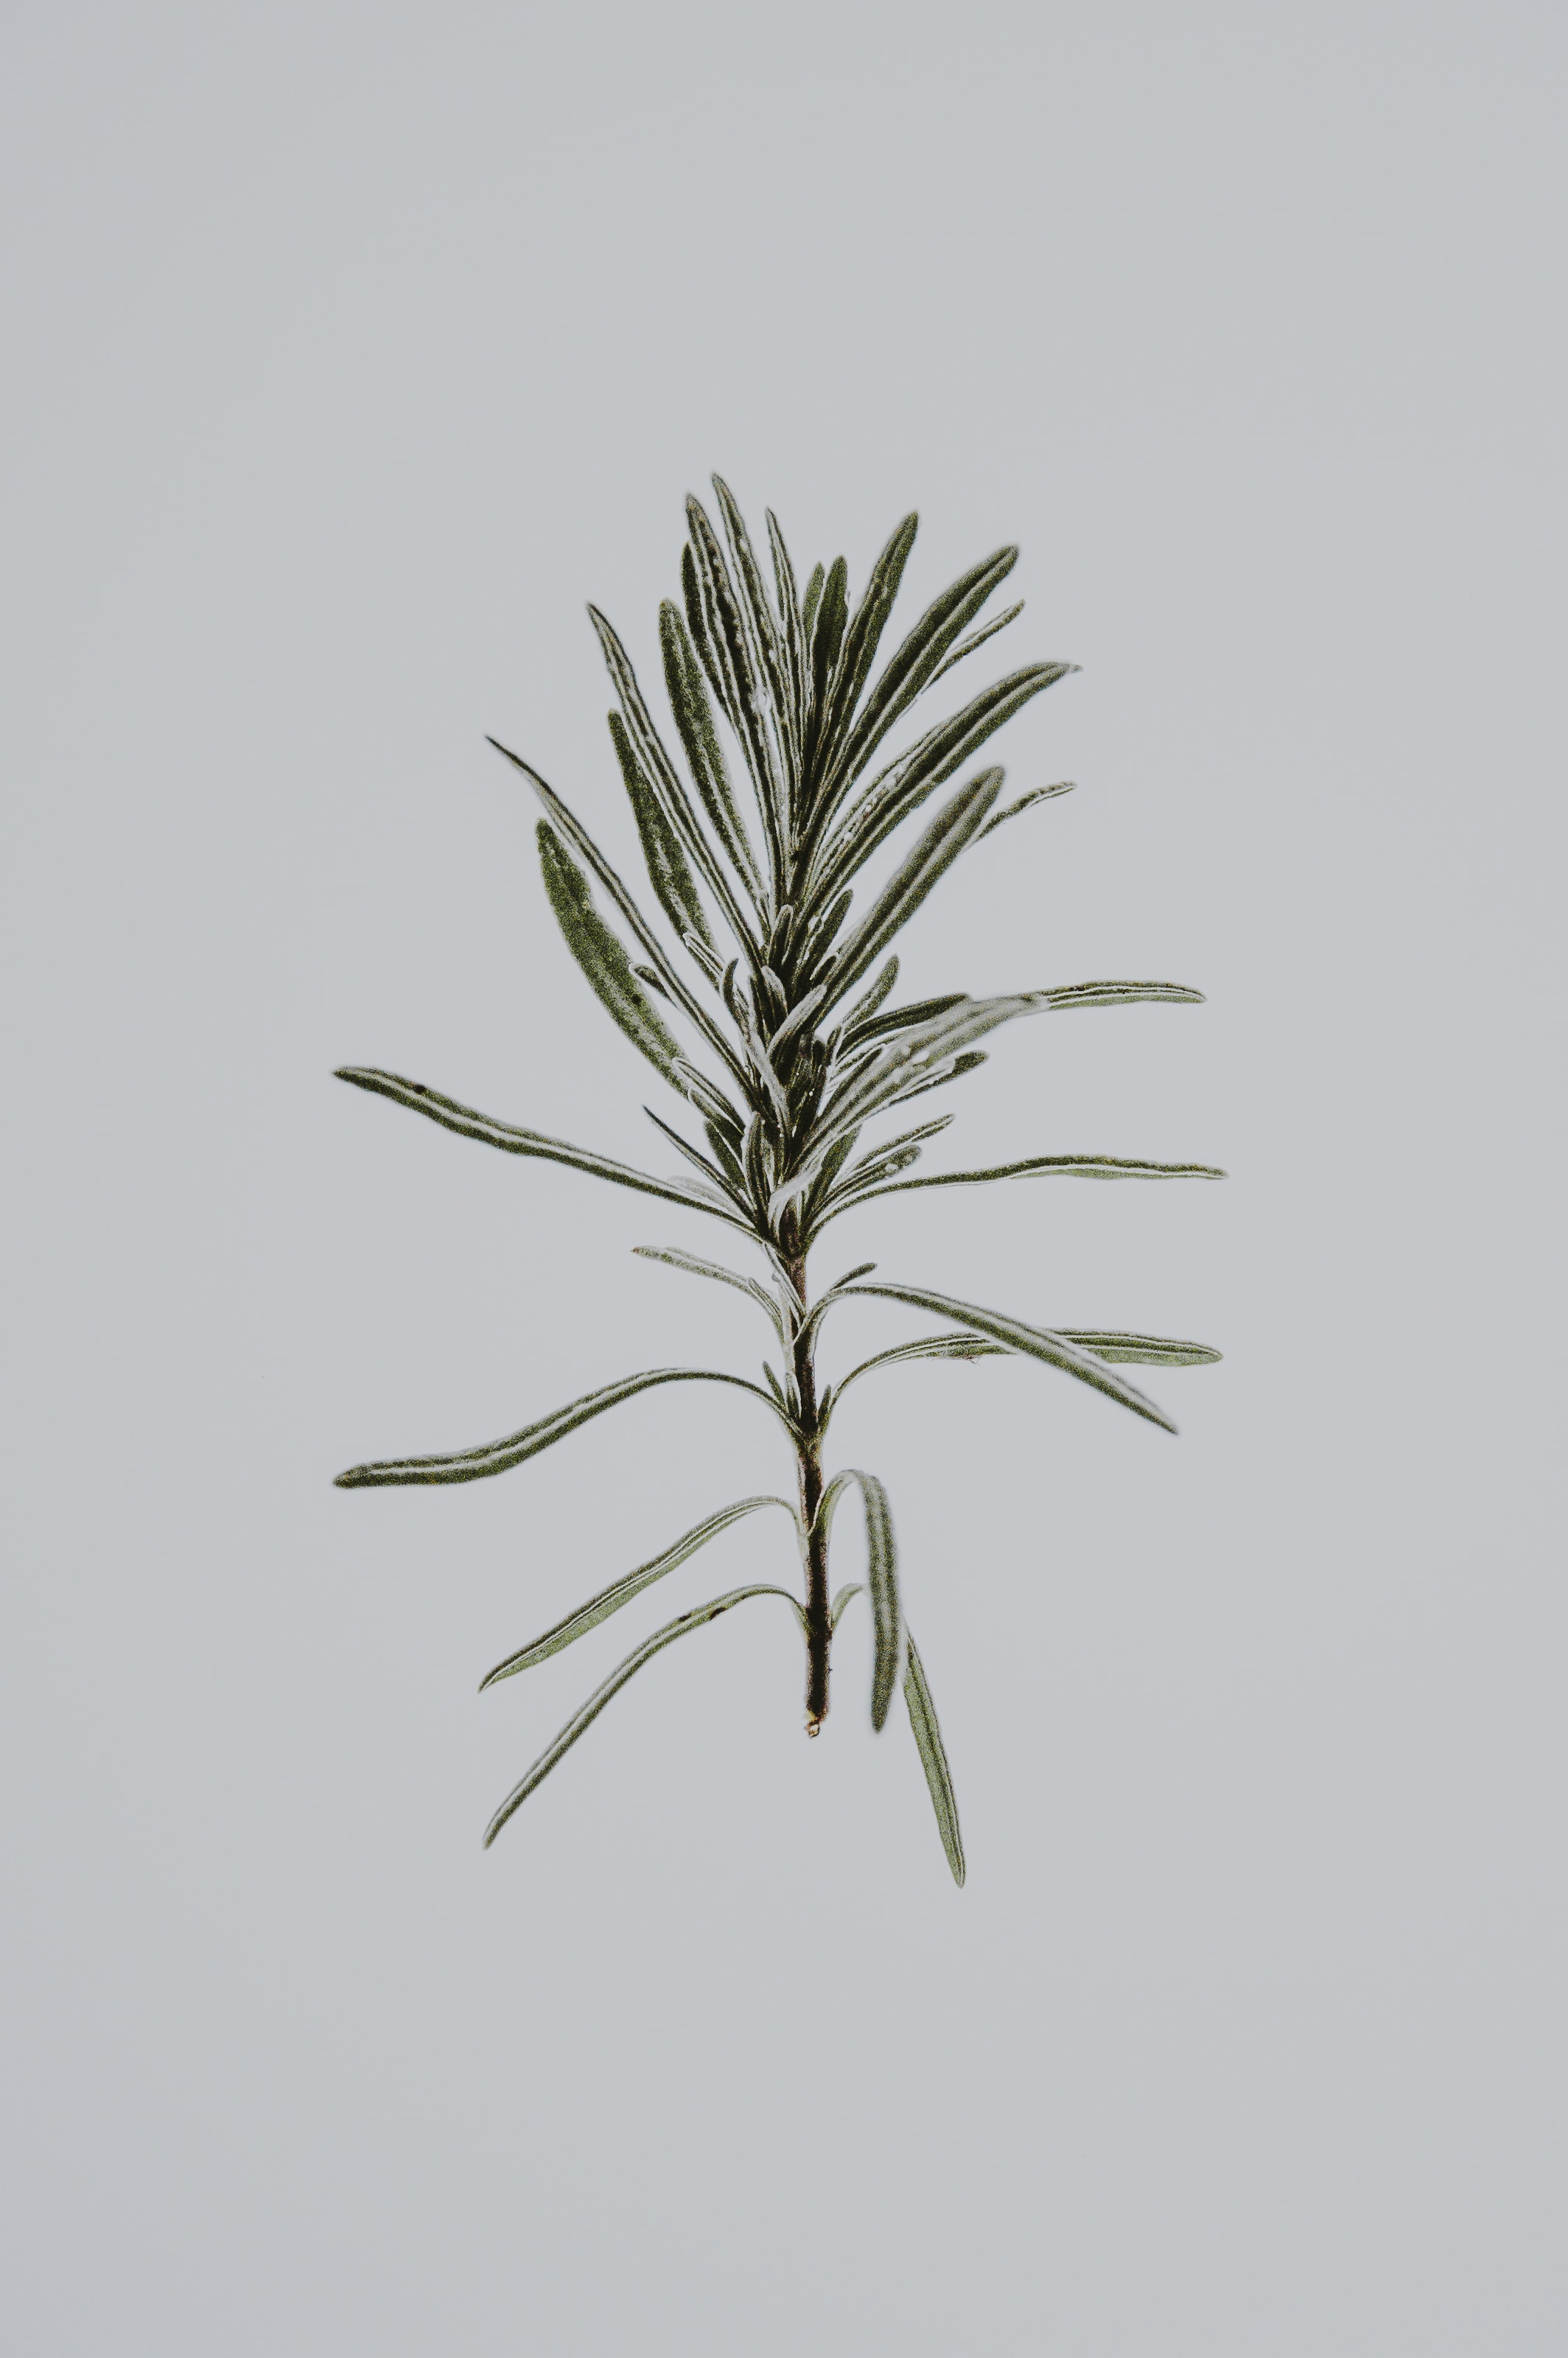 photo of green leafed plant